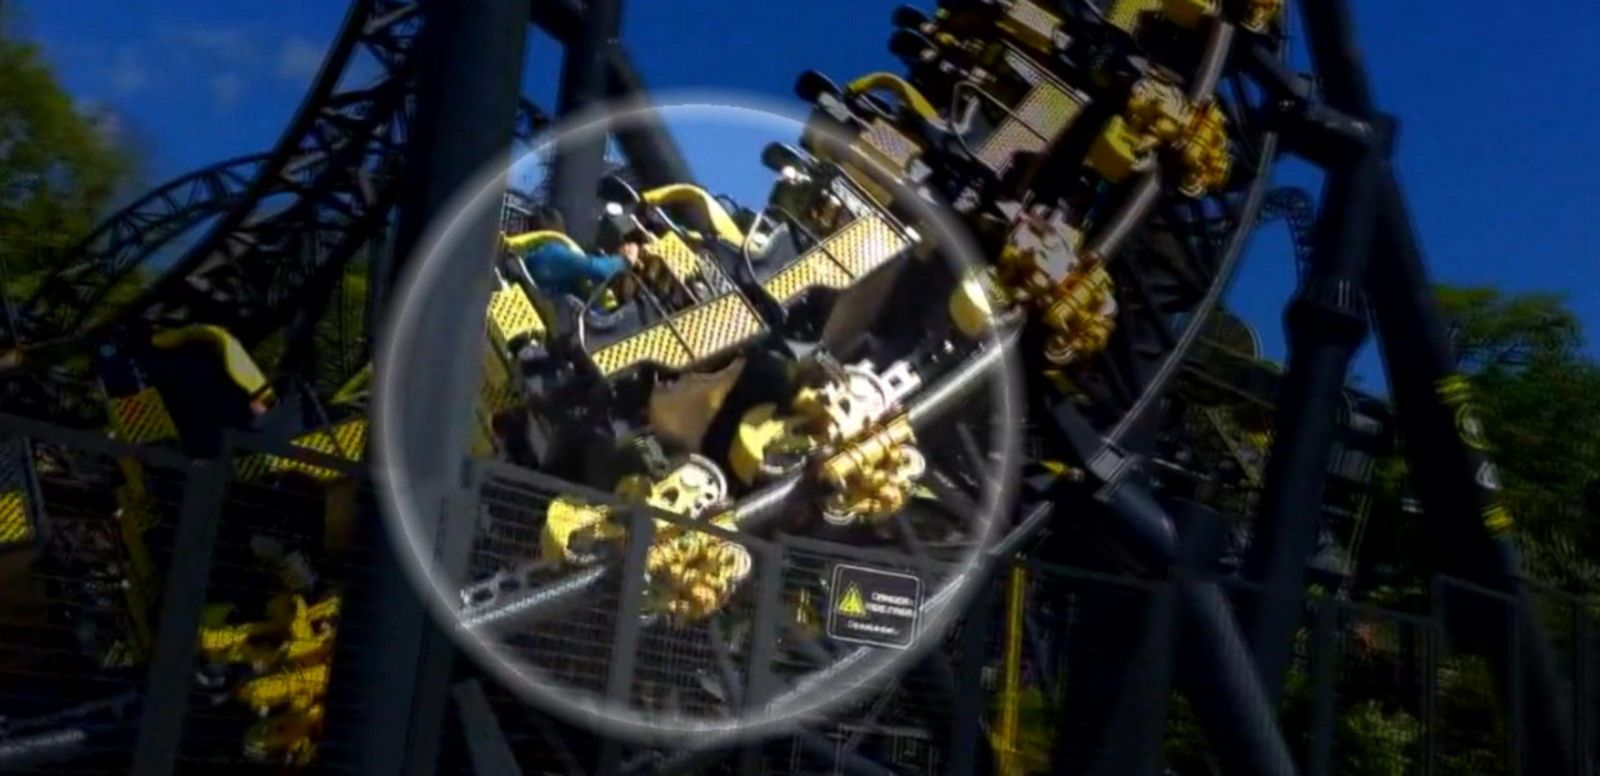 VIDEO: Roller Coaster Collision at London Amusement Park Leaves 4 Injured